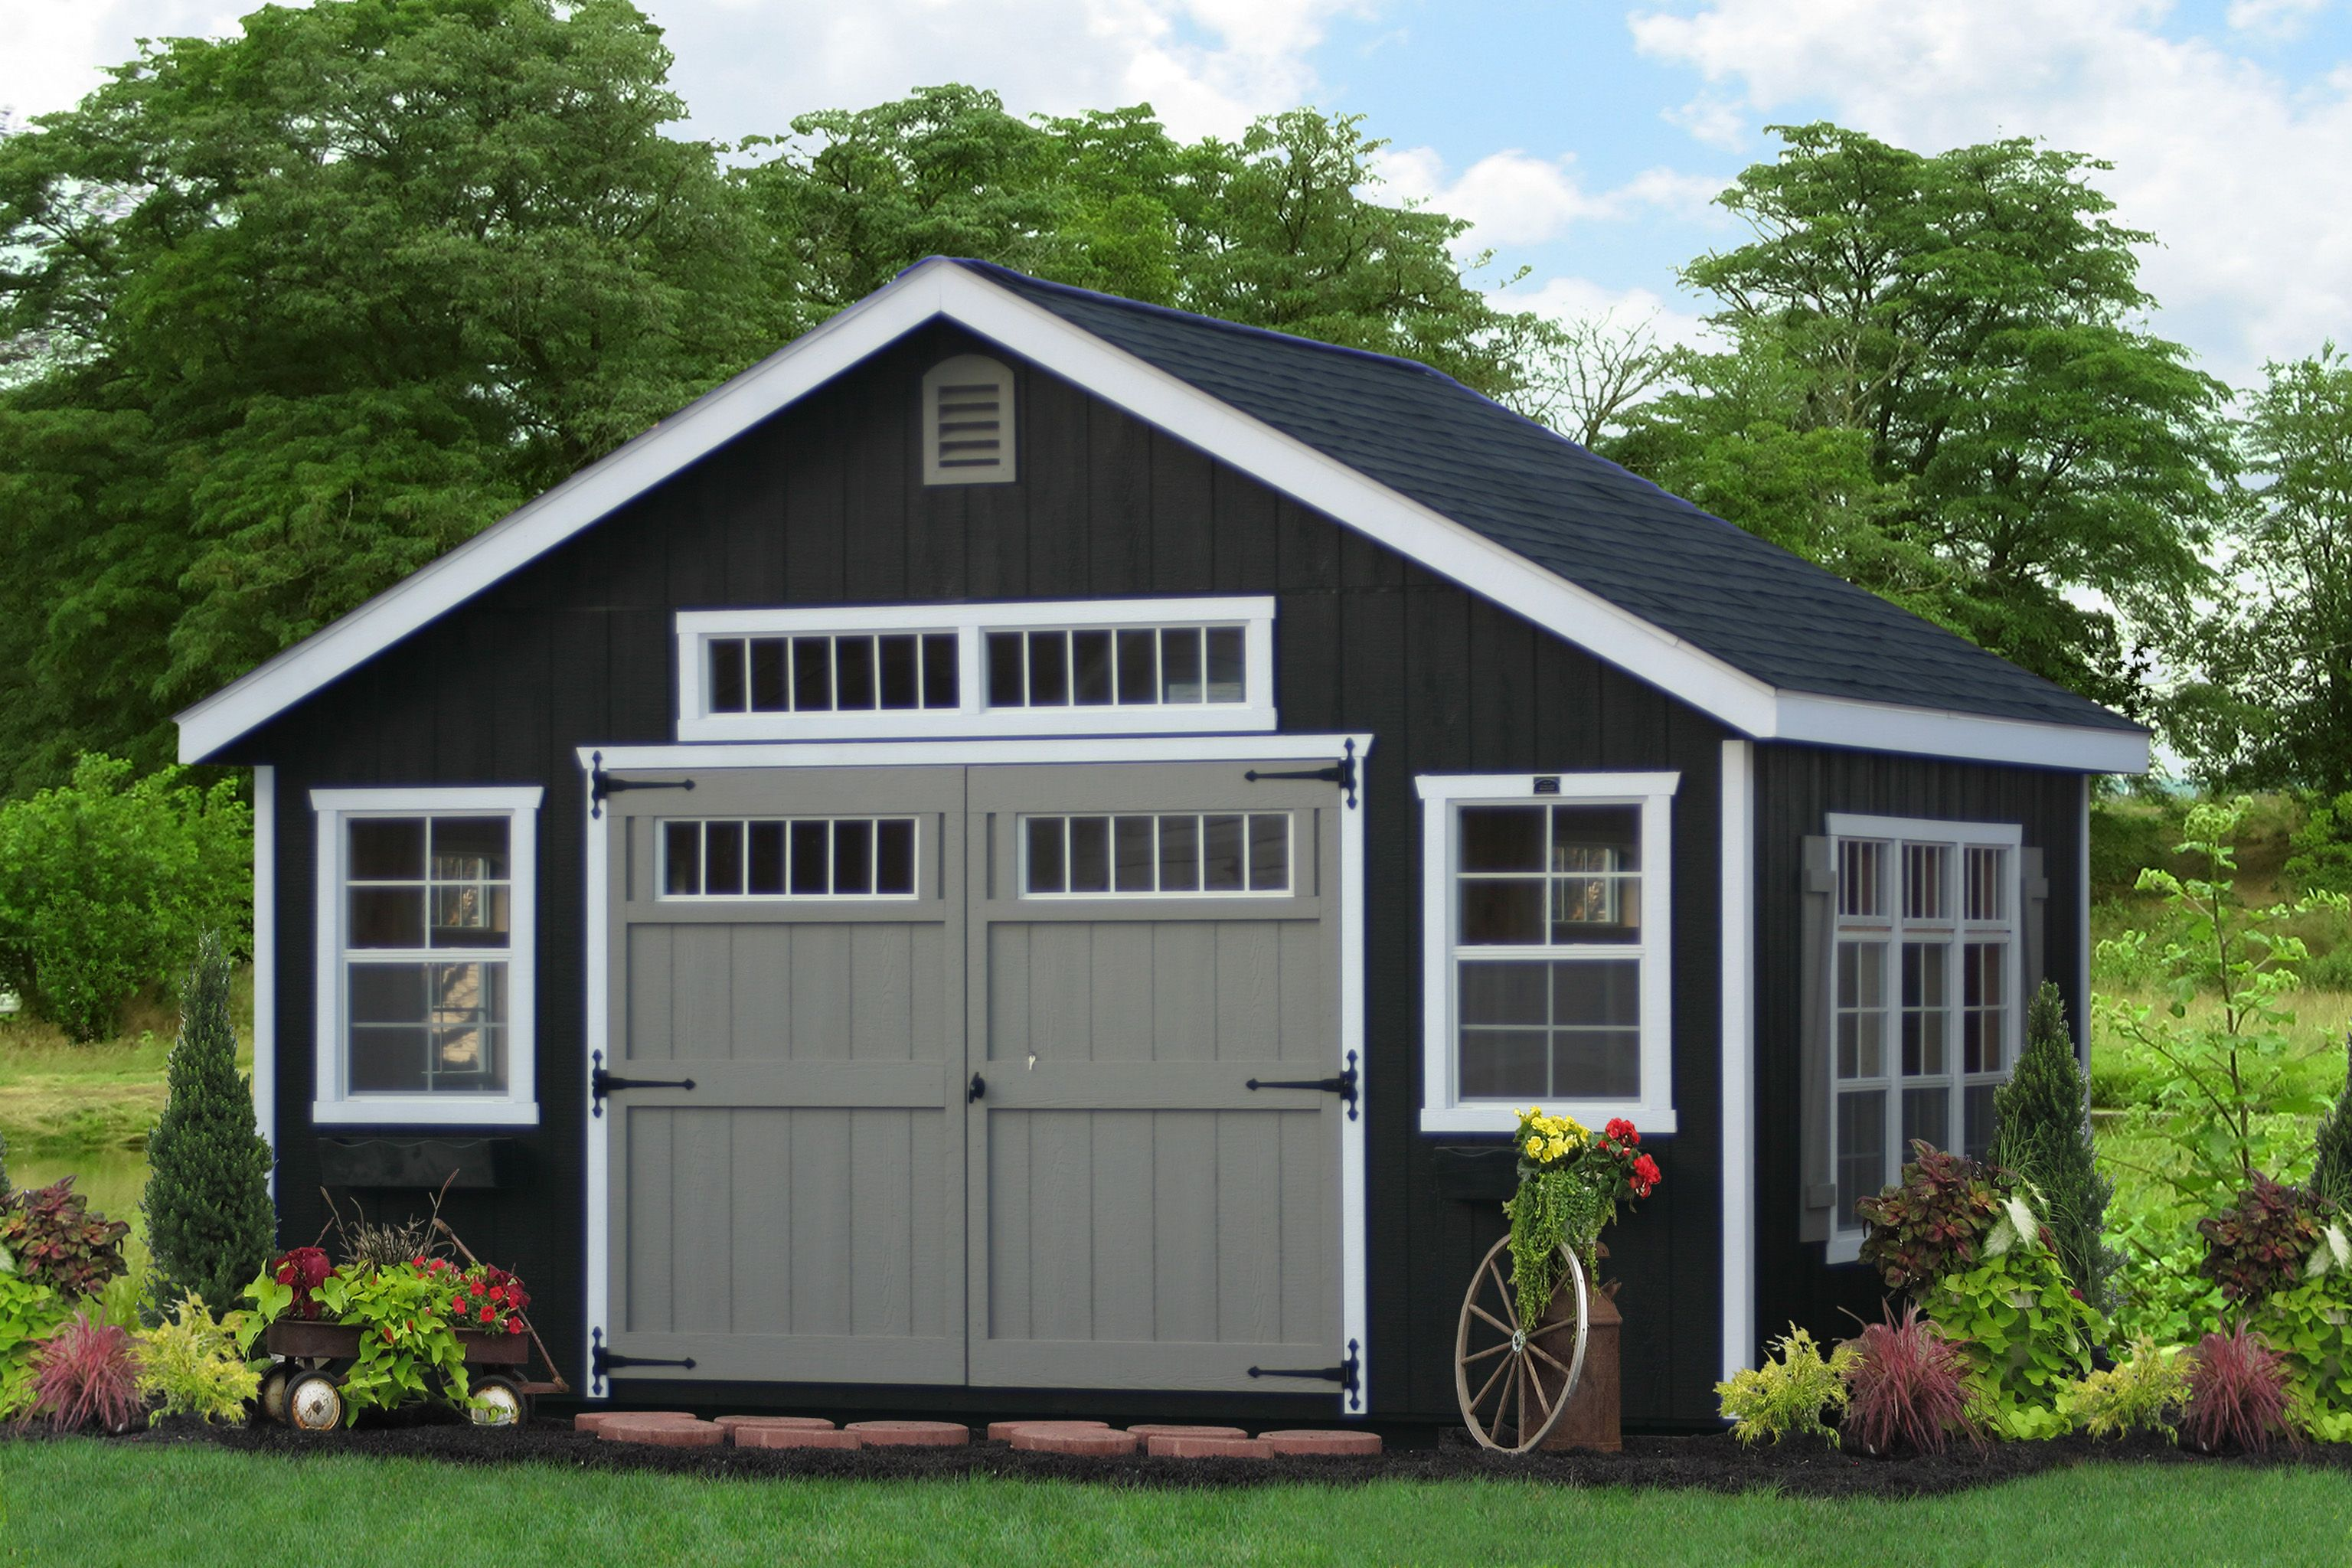 handy lowes home in nc for ft outdoor sheds shed business ct qld columbia storage walmart sale x majestic wood salequeensland com tn mn self products cheap